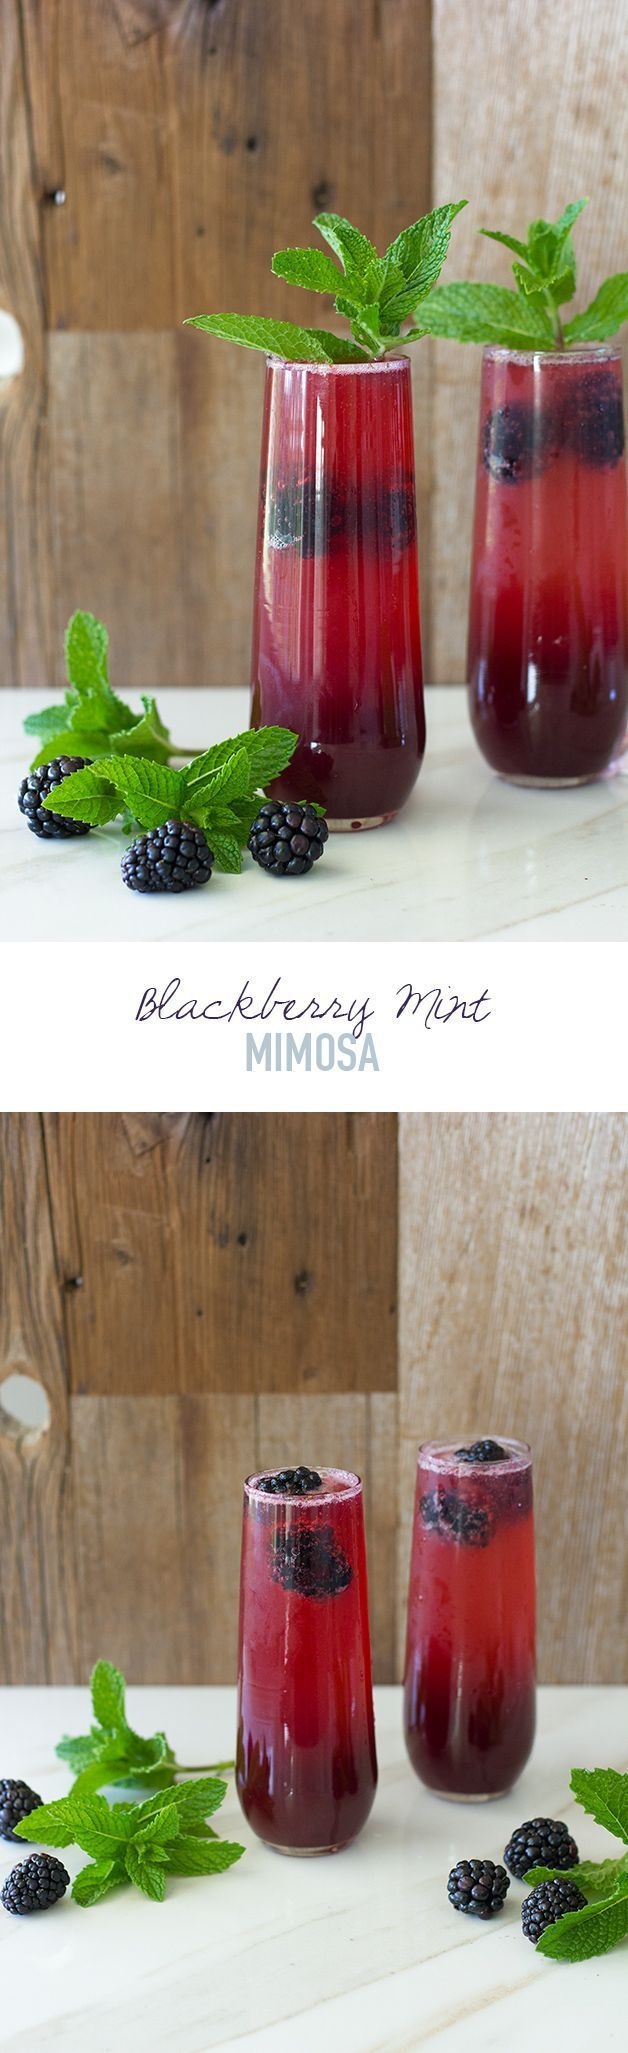 Blackberry Mint Mimosa - a summery spin on the classic mimosa that makes perfect use of the season's fresh produce. | http://www.brighteyedbaker.co...